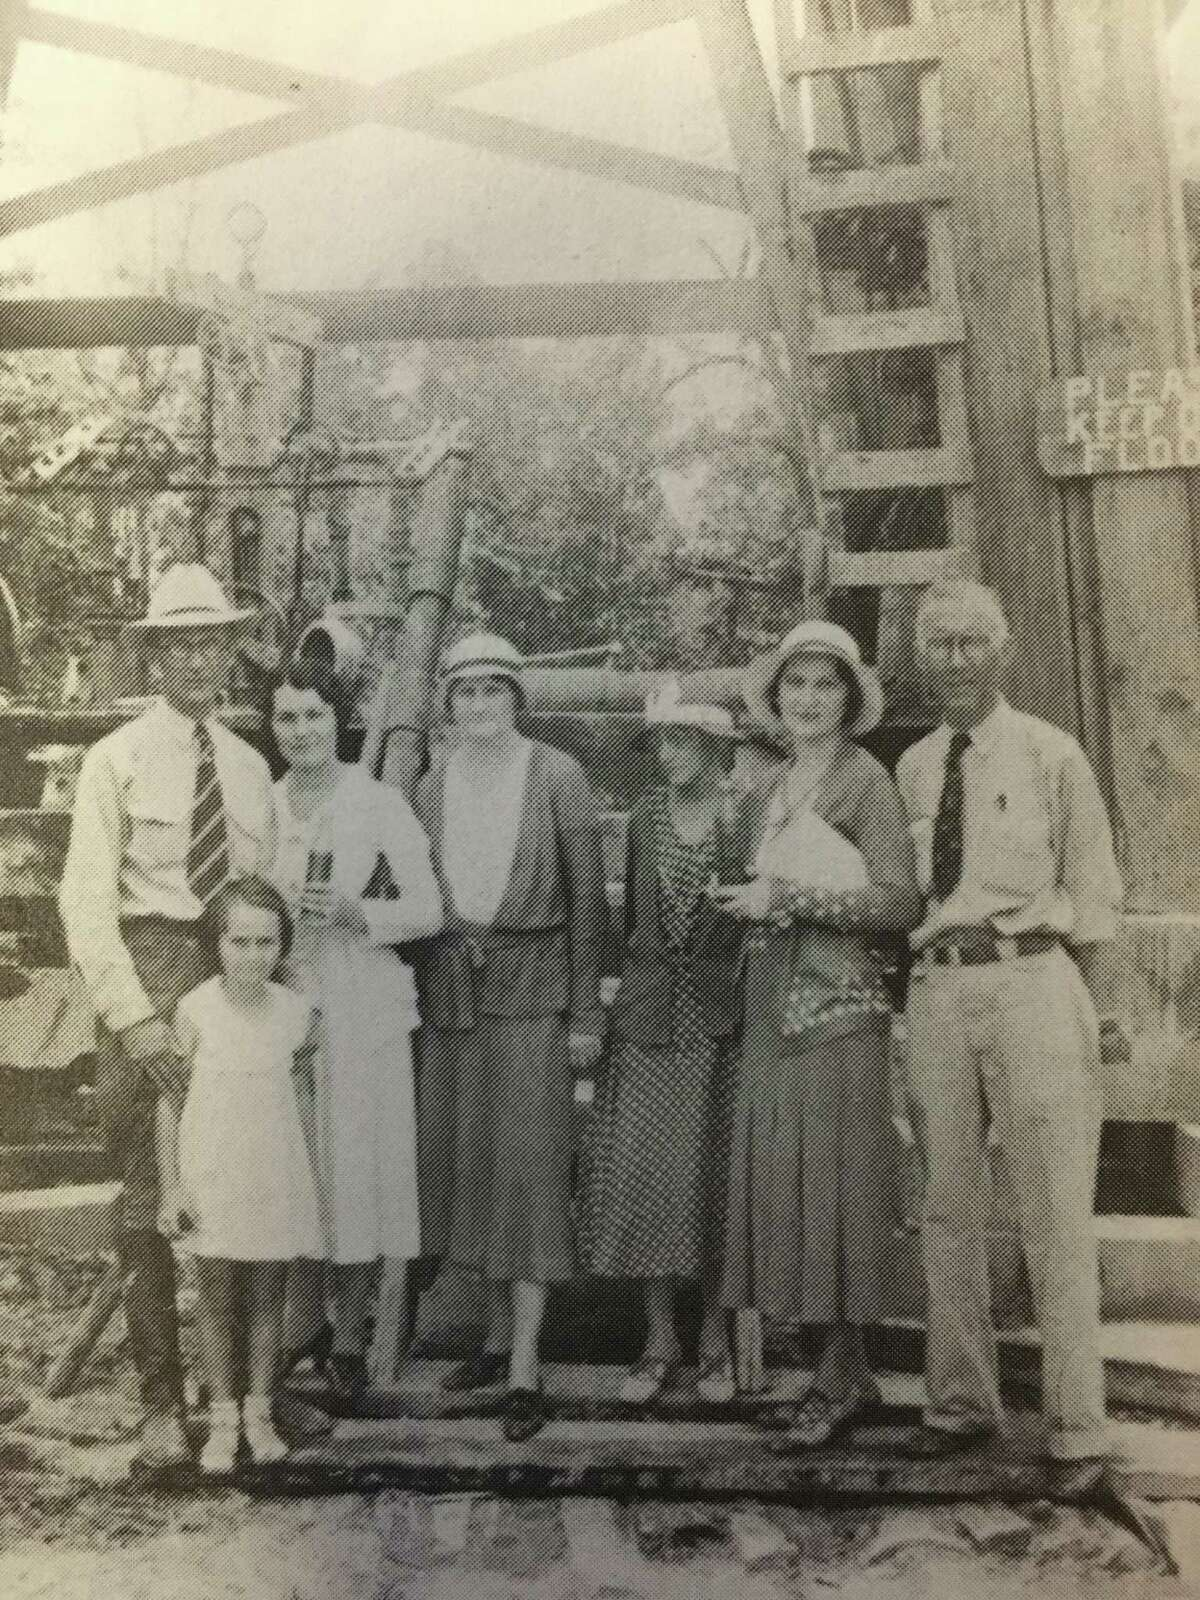 George Strake and his wife, Susan, with their daughter, Betty, and Mr. and Mrs. Bill Pfiffner in front of Strake's first oil well.